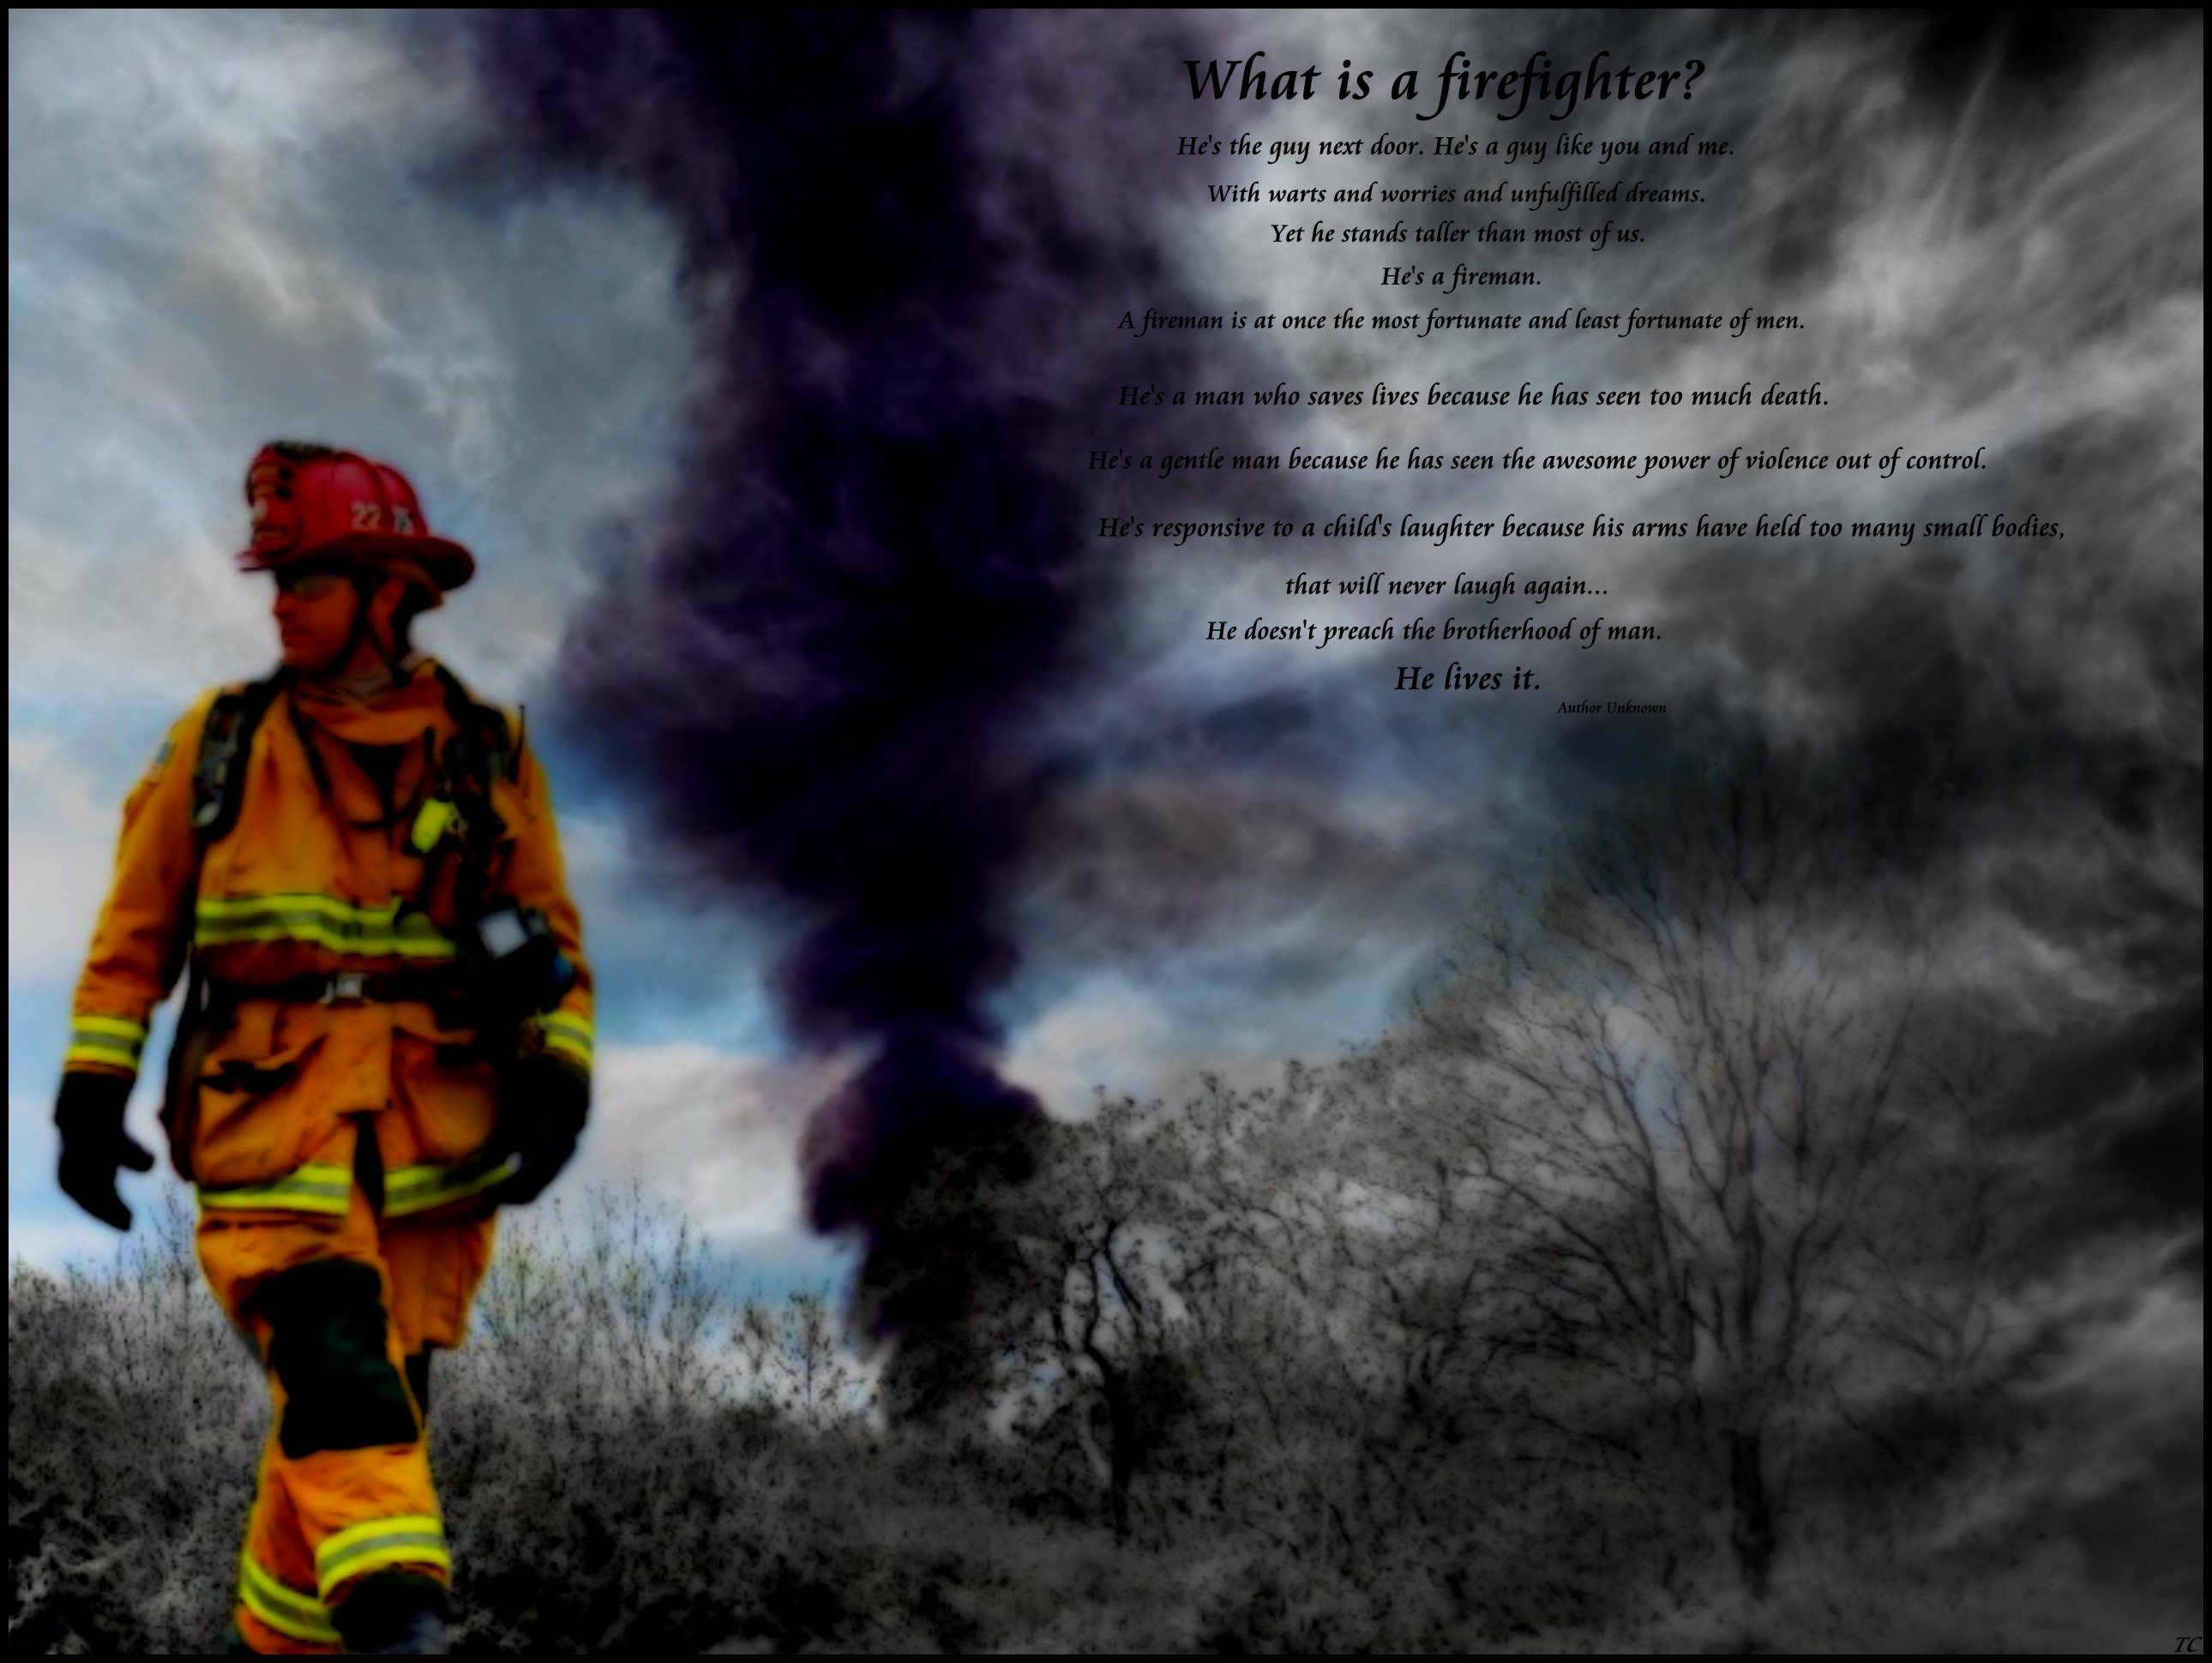 2580x1940 Firefighter Prayer Wallpaper Firefighter wallpaper